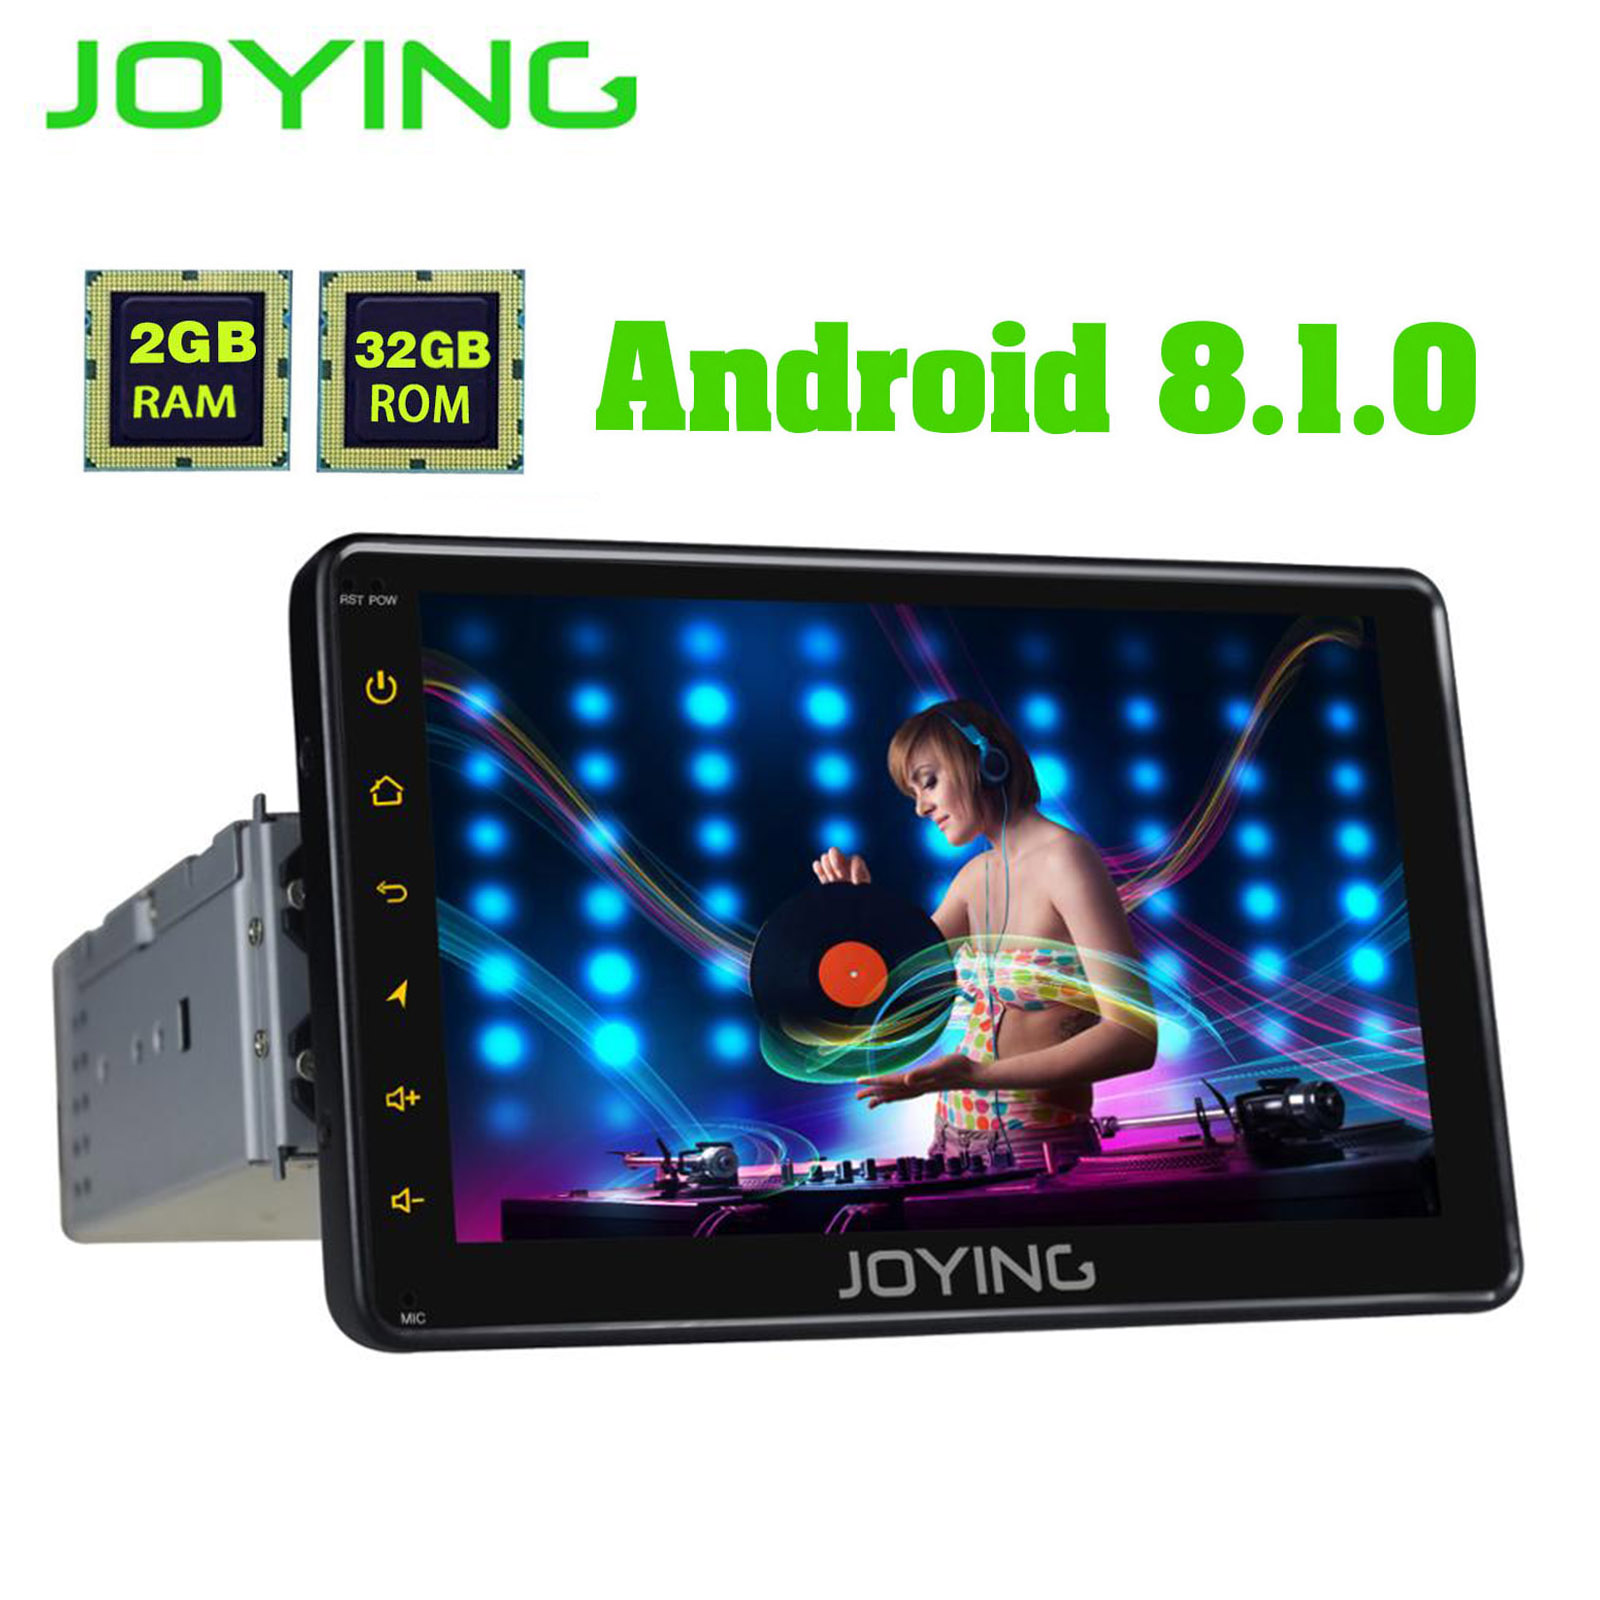 JOYING 2GB RAM Android 8 1 Car Autoradio 1 Single DIN 7 Head Unit HD Multimedia